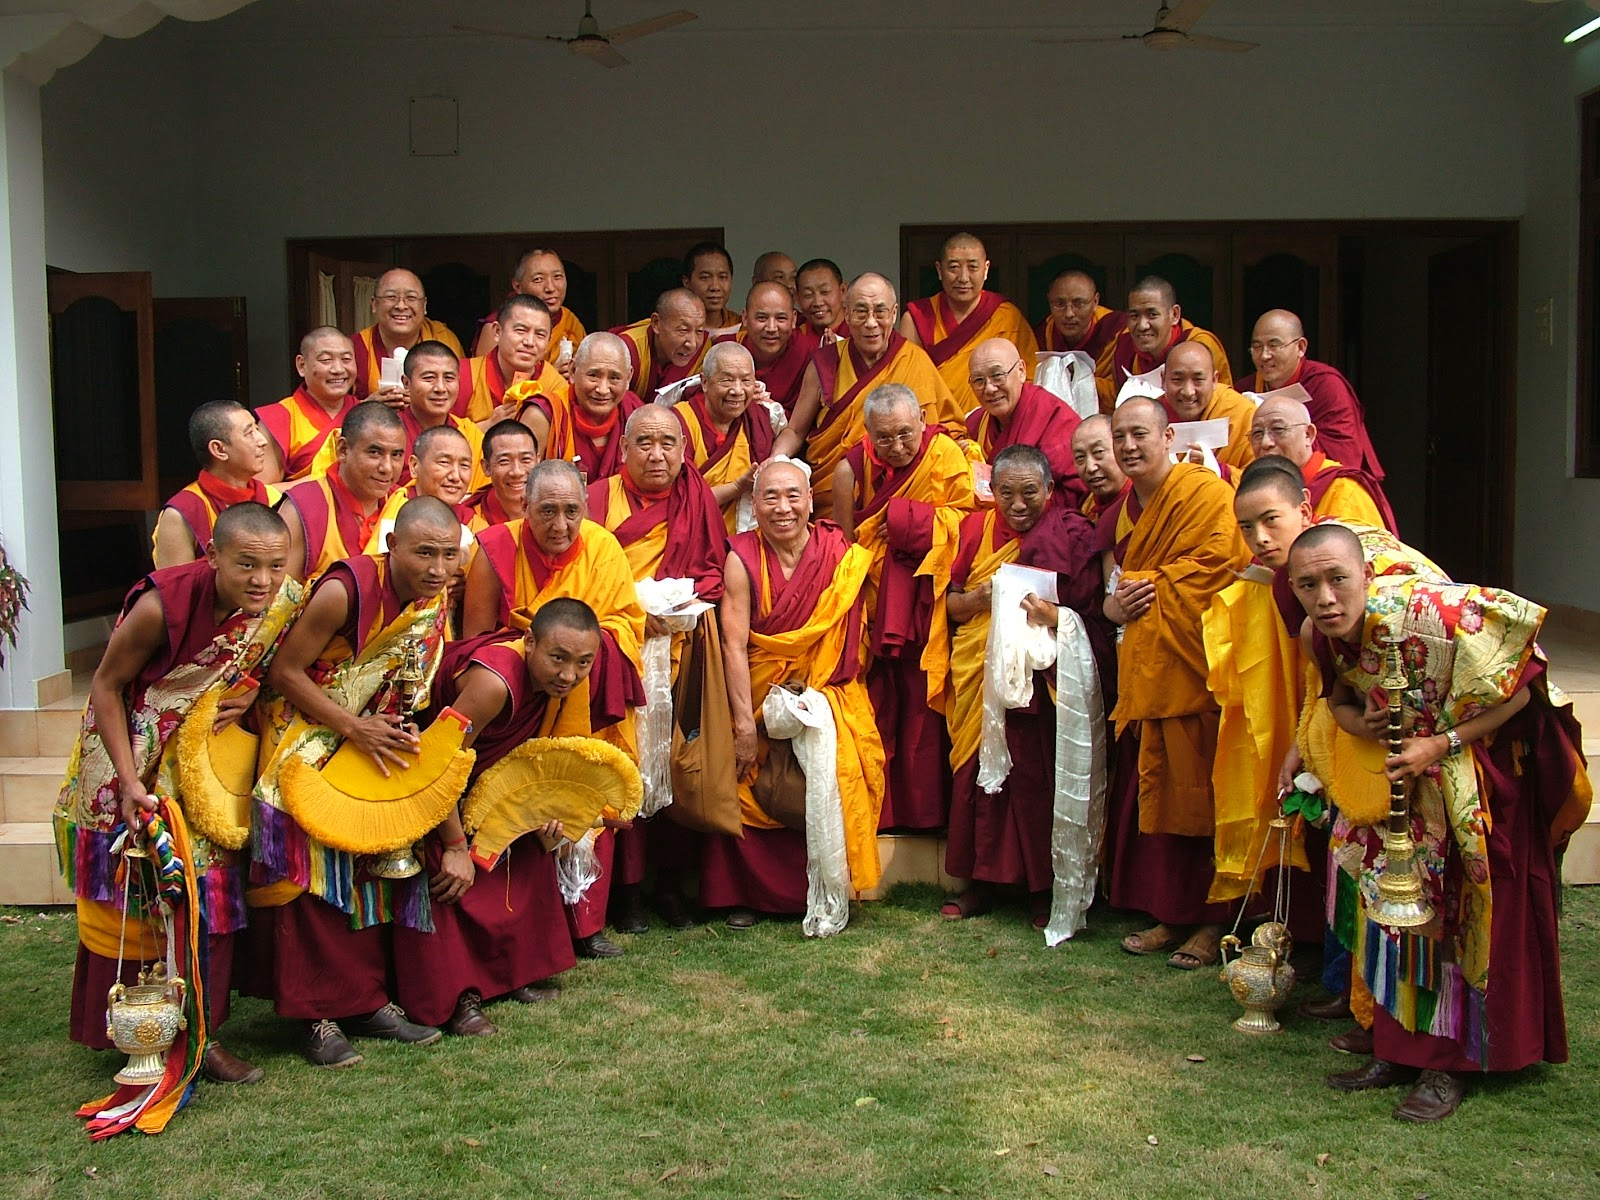 FPMT Geshes's with His Holiness the Dalai Lama